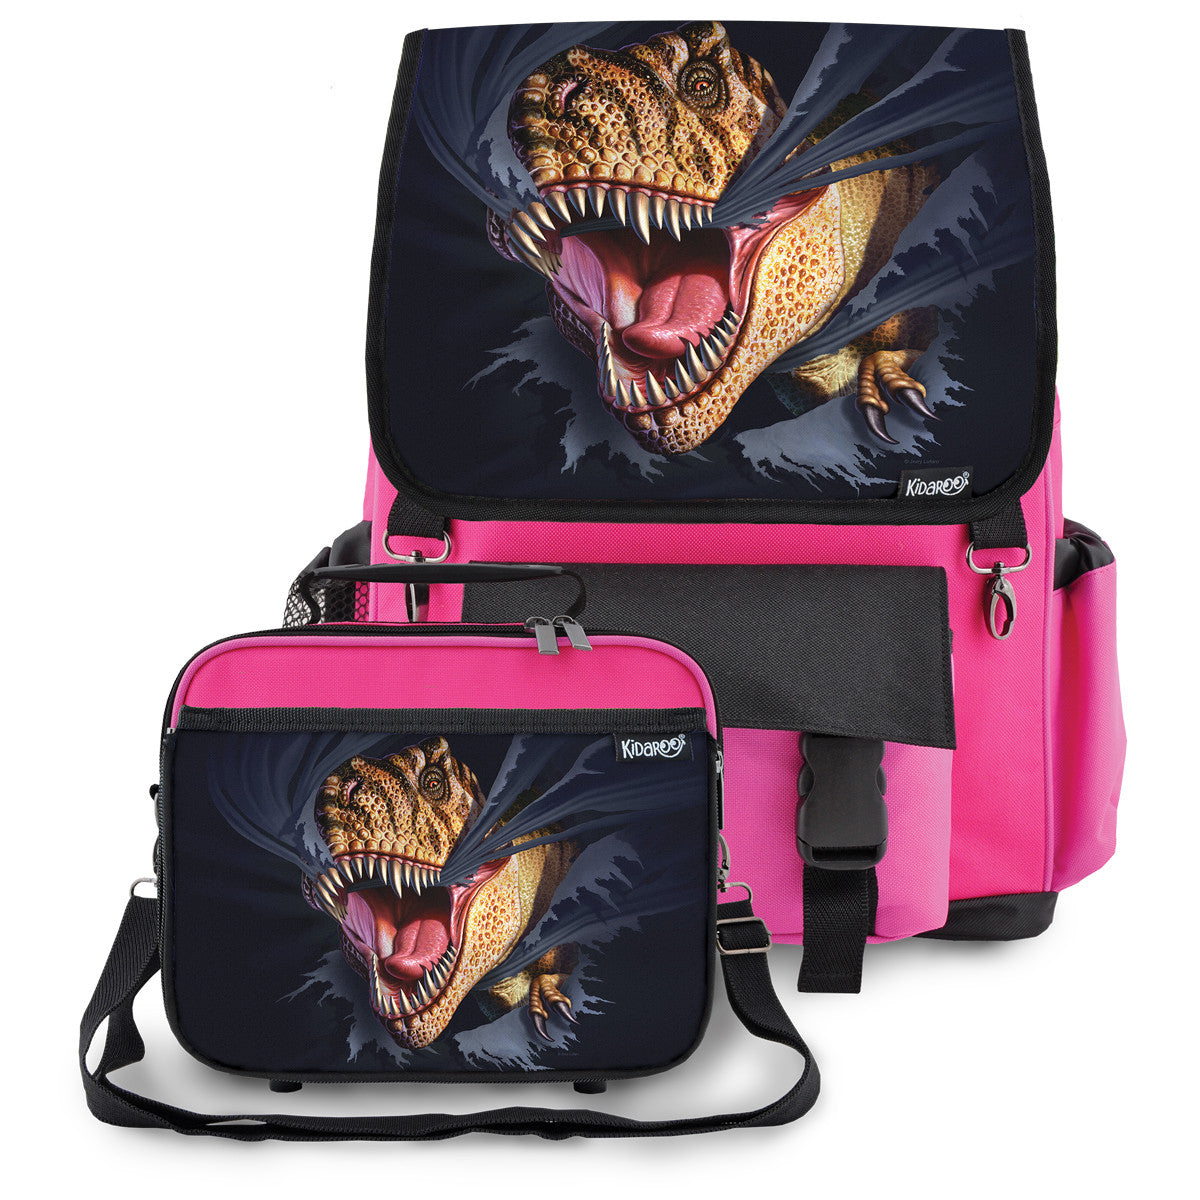 Kidaroo Pink Tearing T-Rex Dinosaur School Backpack & Lunchbox Set for Boys, Girls, Kids